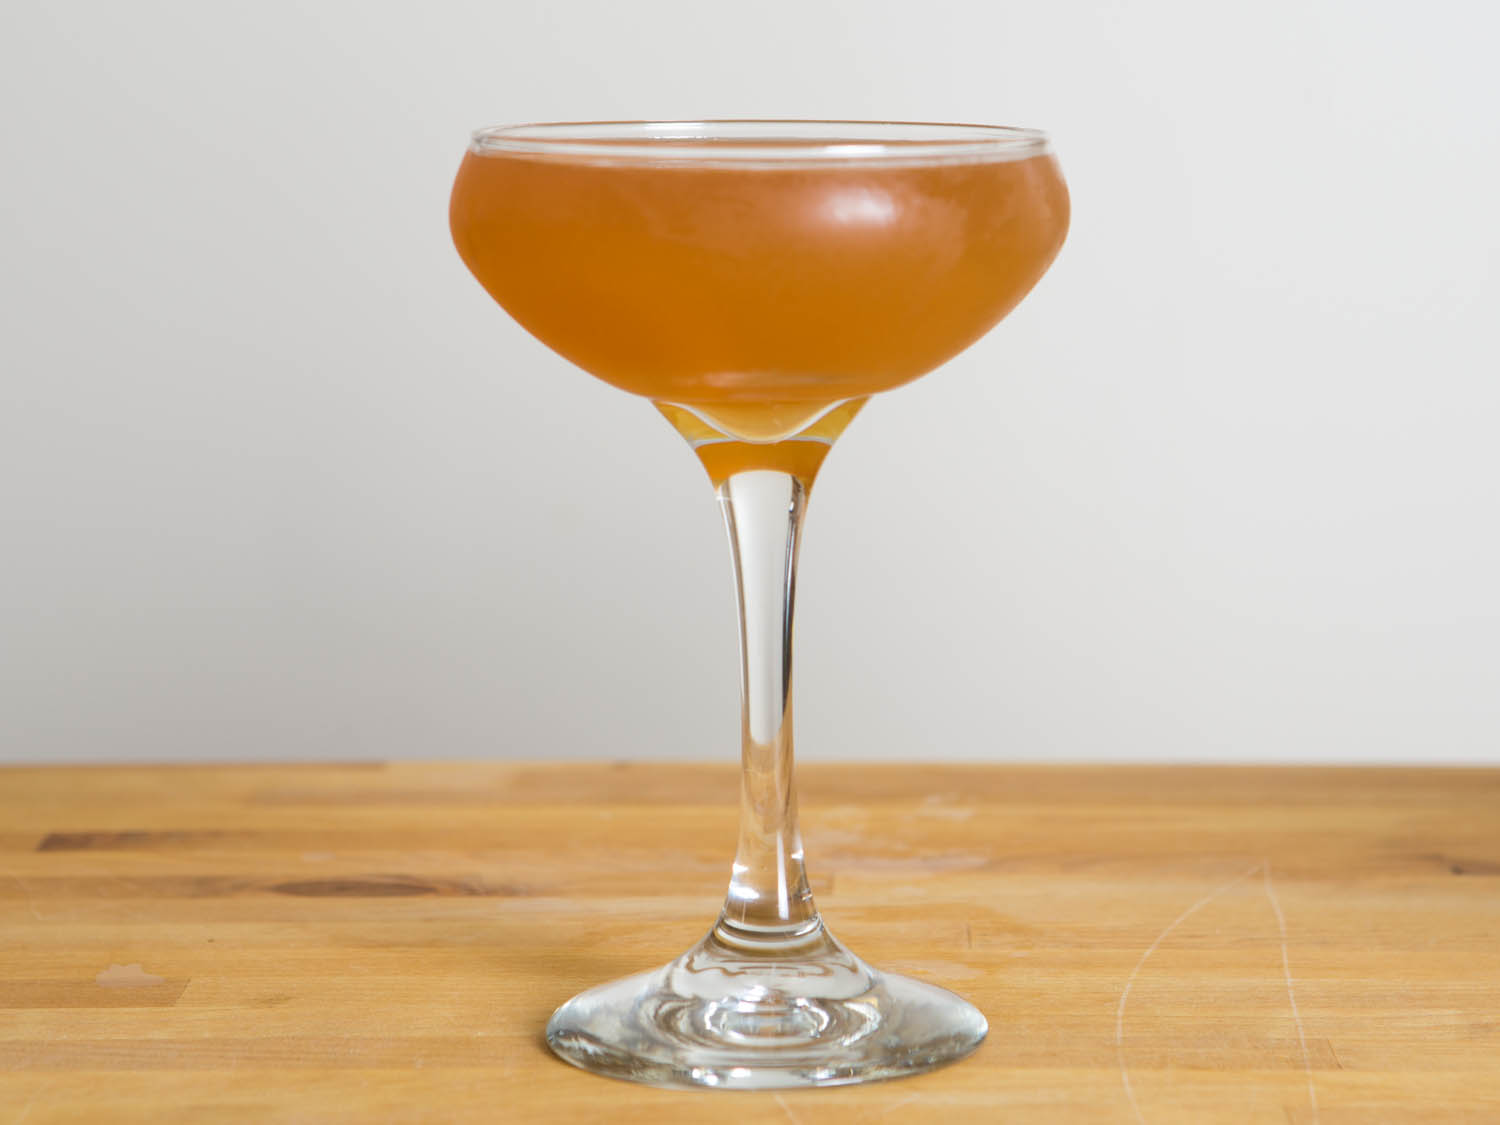 Image for unsobered listicle on classic sour cocktails